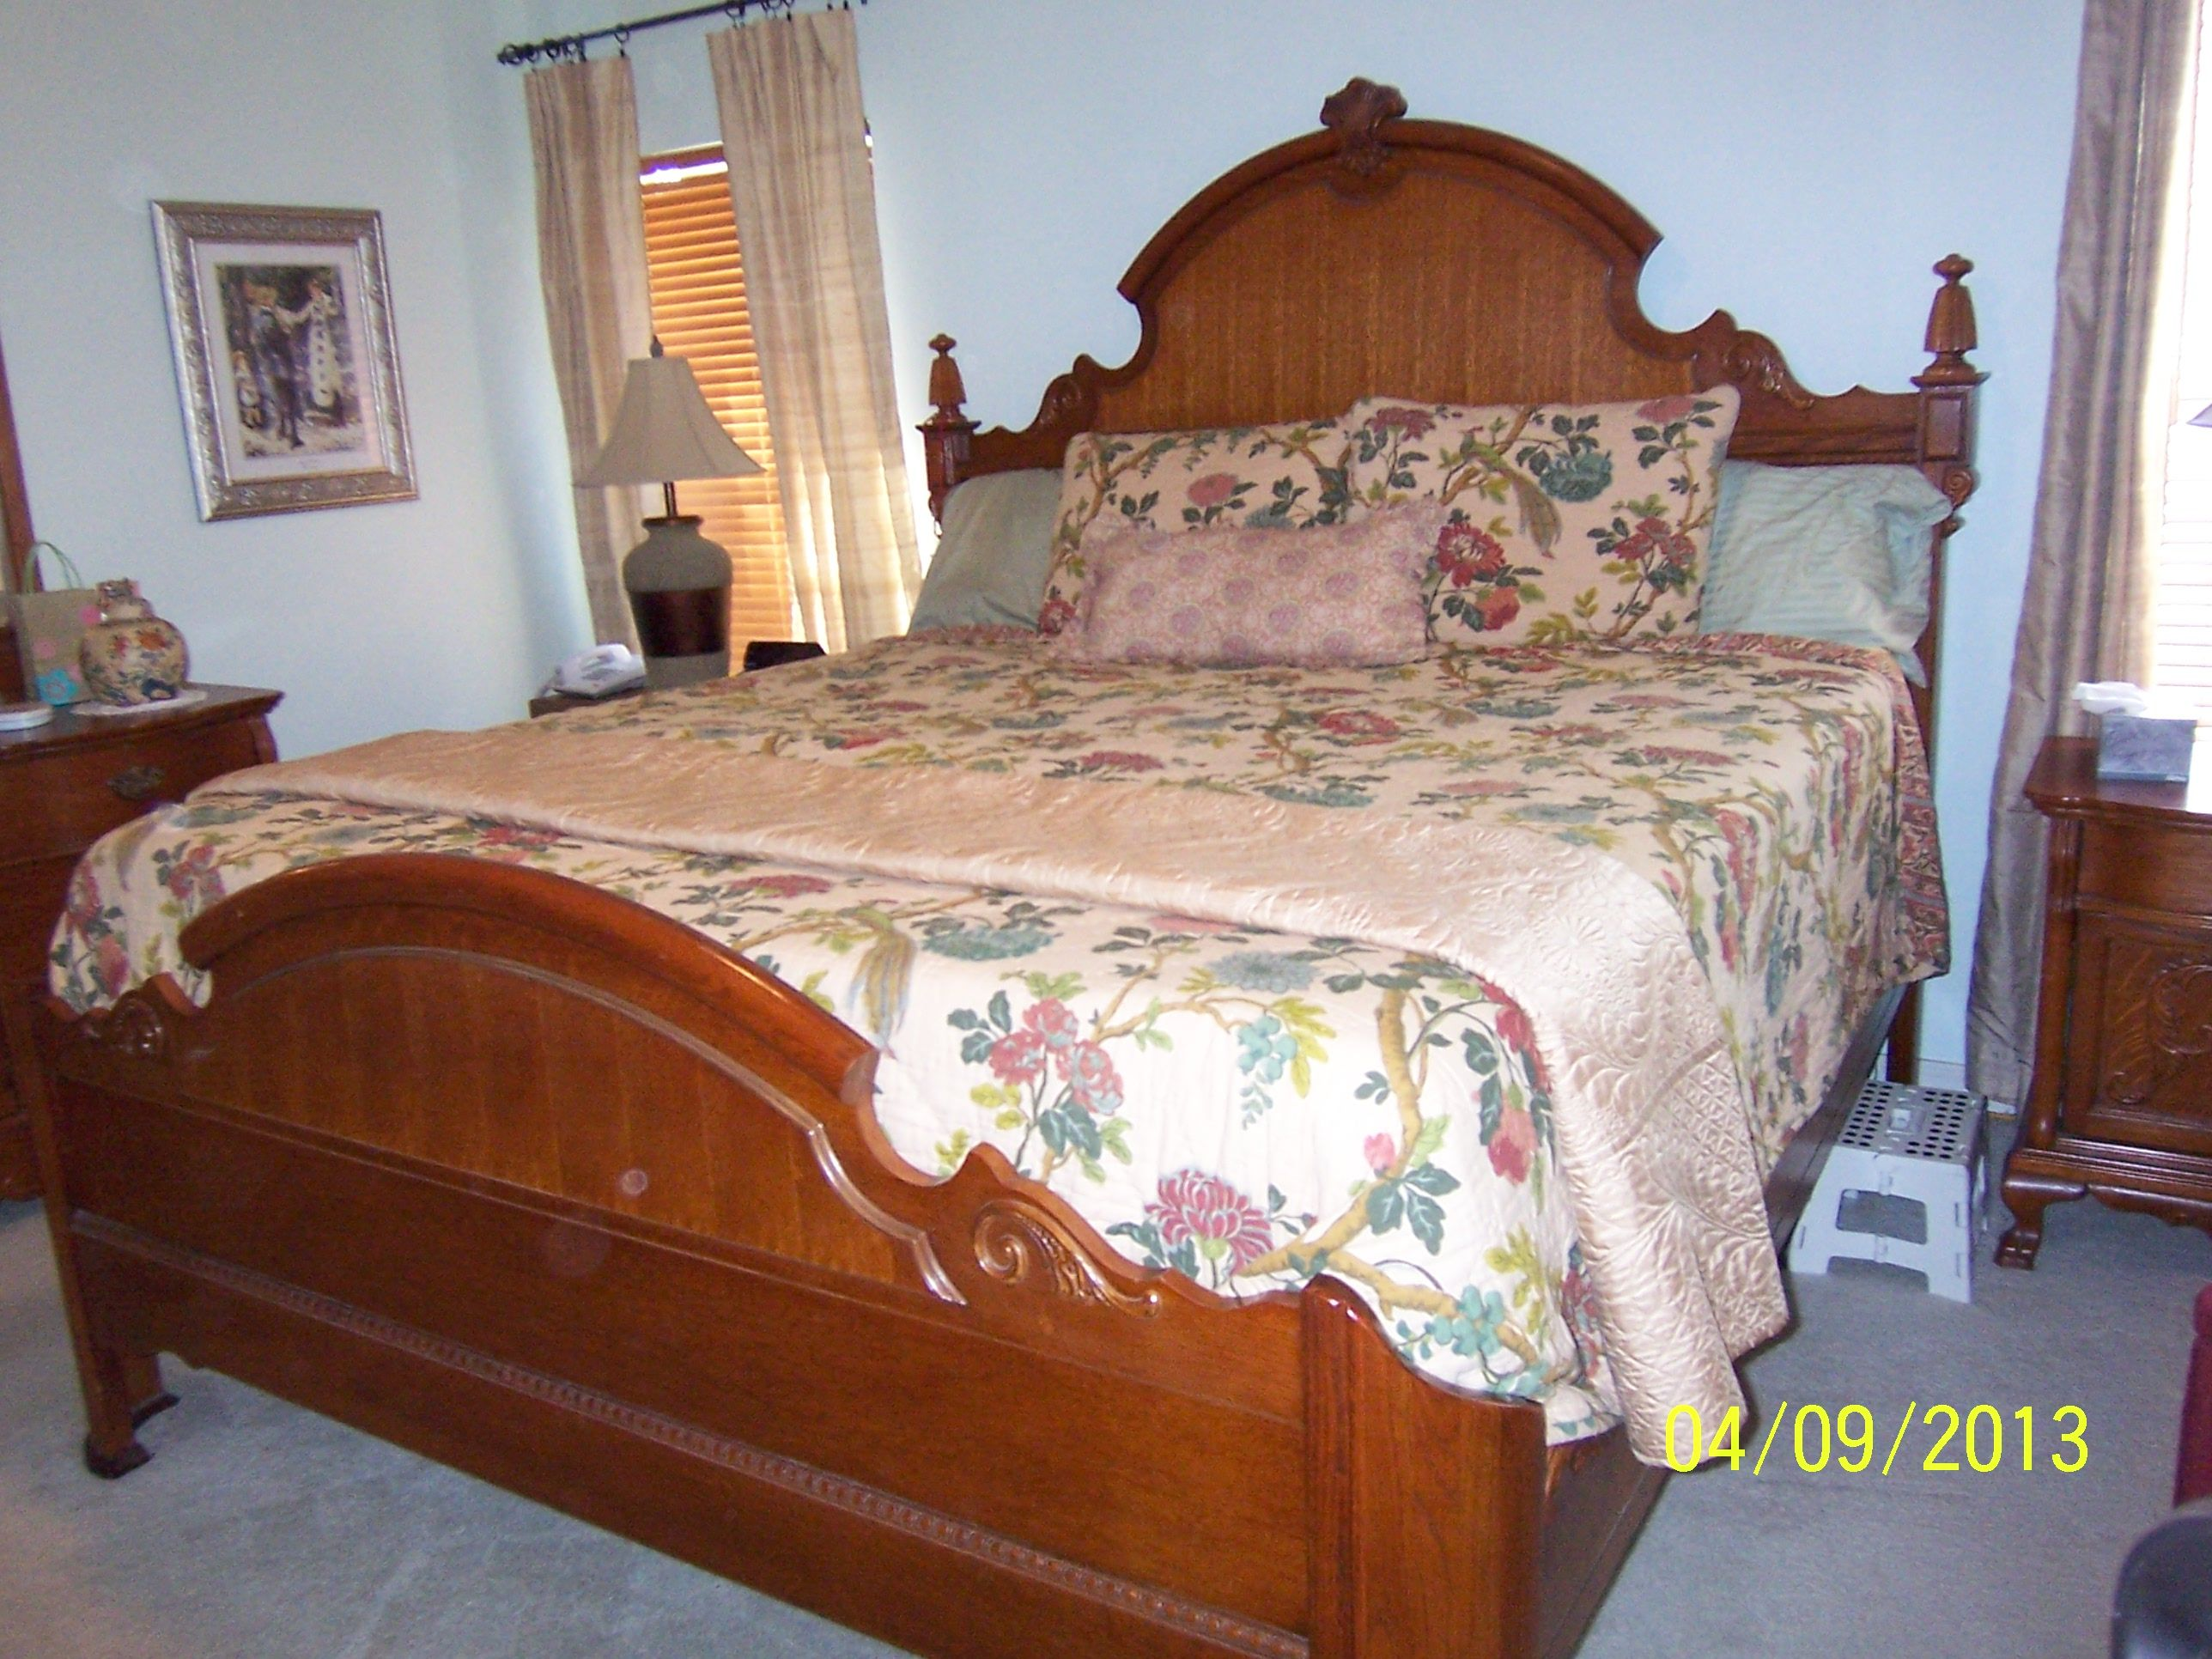 Lexington Victorian Sampler King Mansion Bed I Have The Queen Bed And Am Contemplating Selling